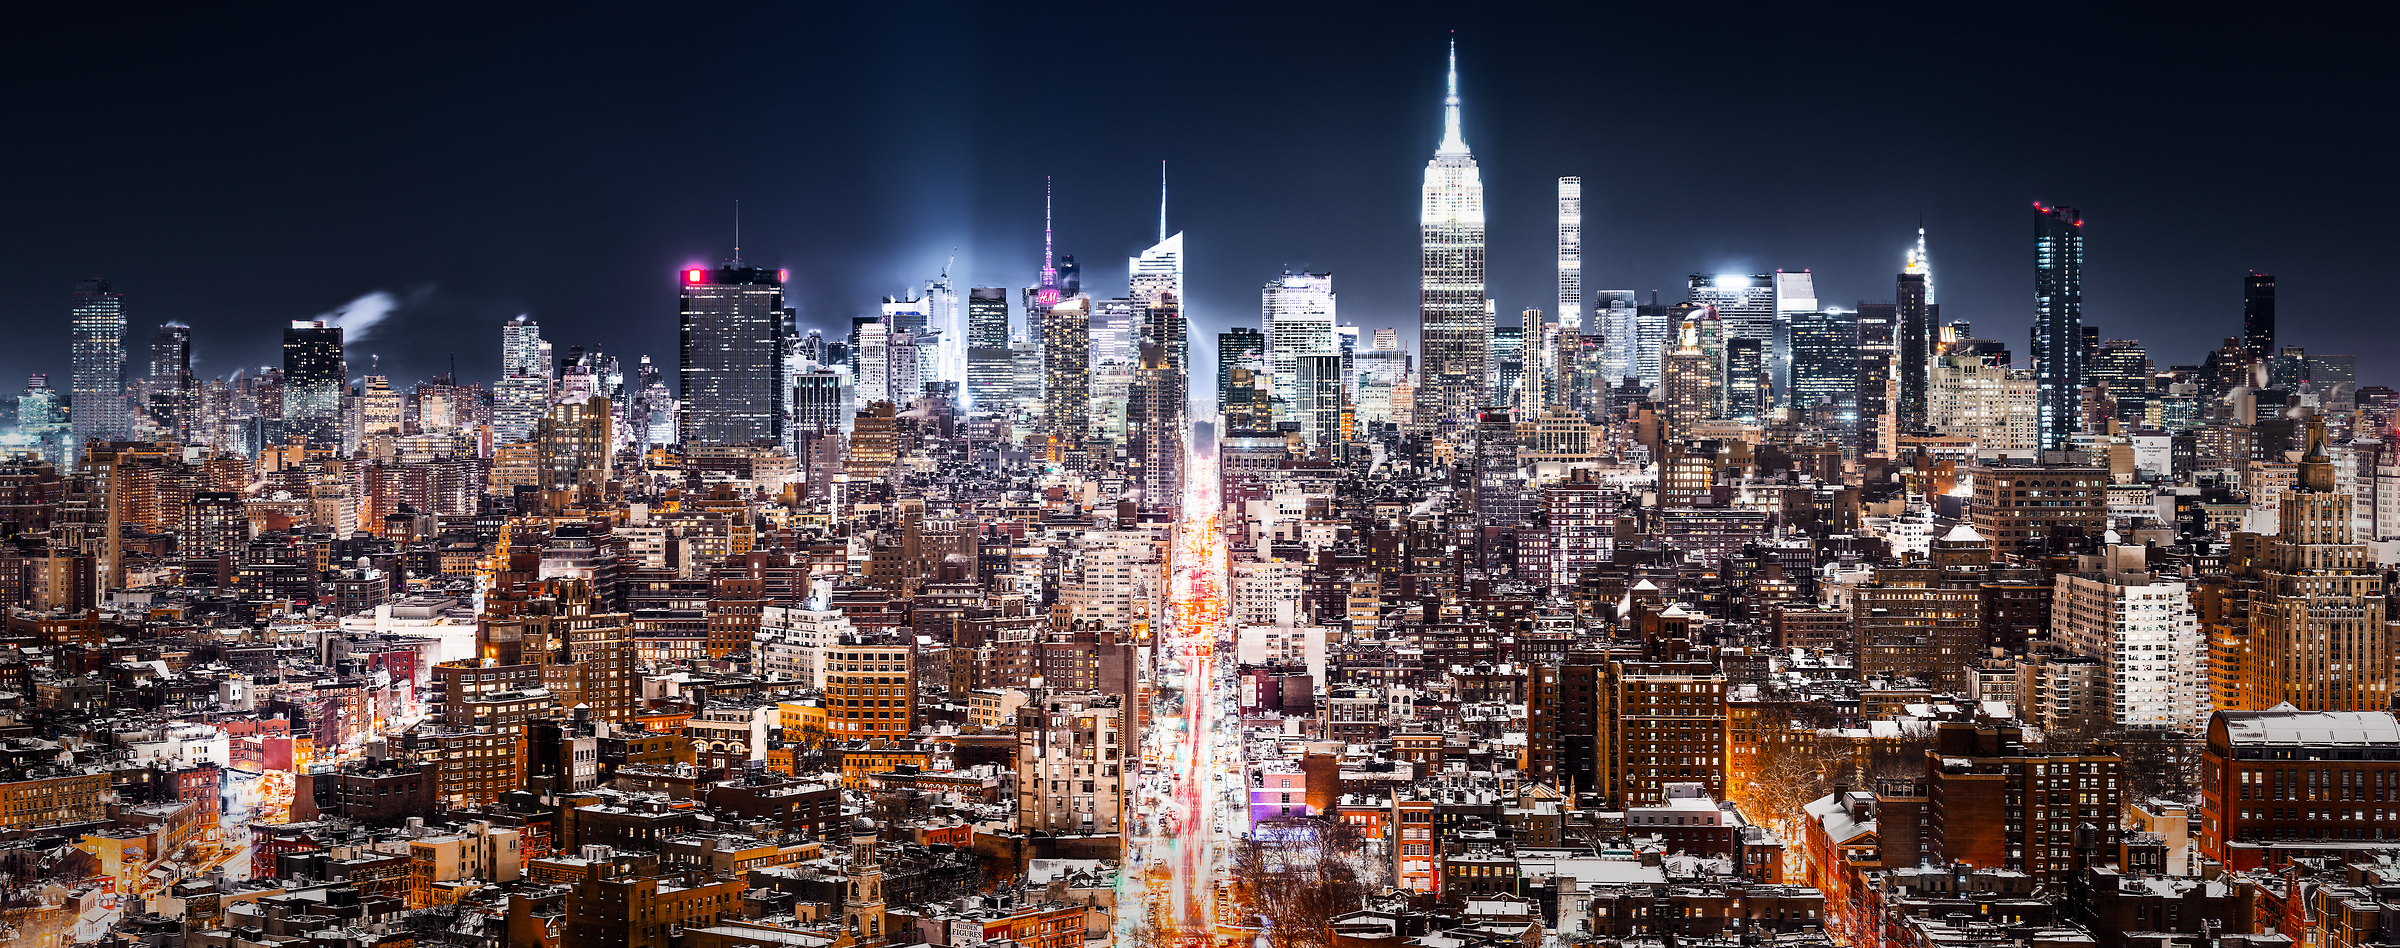 photos of new york city at night fine art prints vast. Black Bedroom Furniture Sets. Home Design Ideas